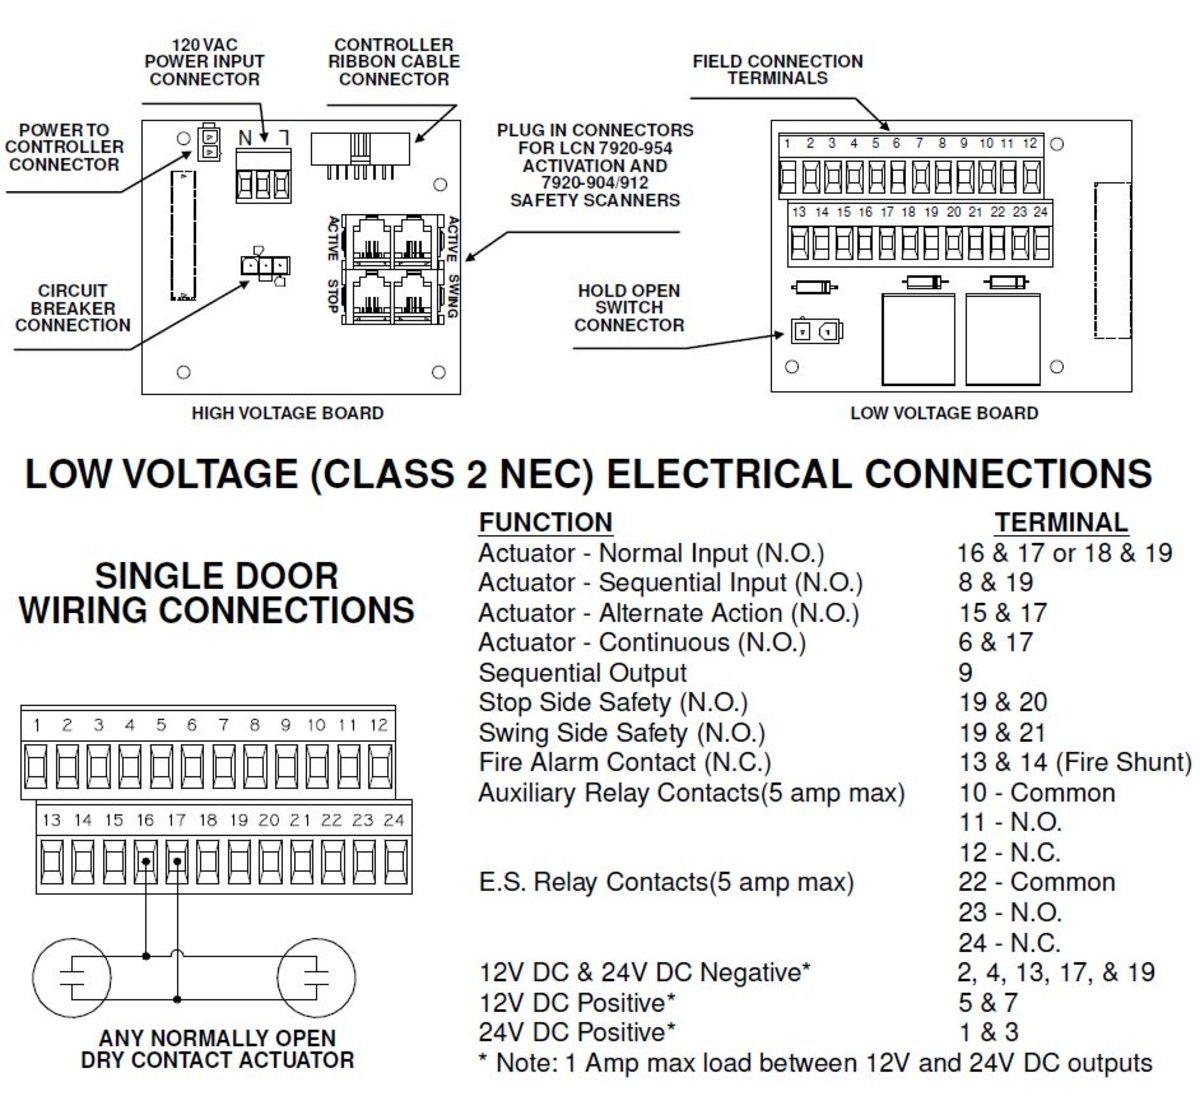 8269329 vingcard exit door wire diagram,exit \u2022 indy500 co  at edmiracle.co